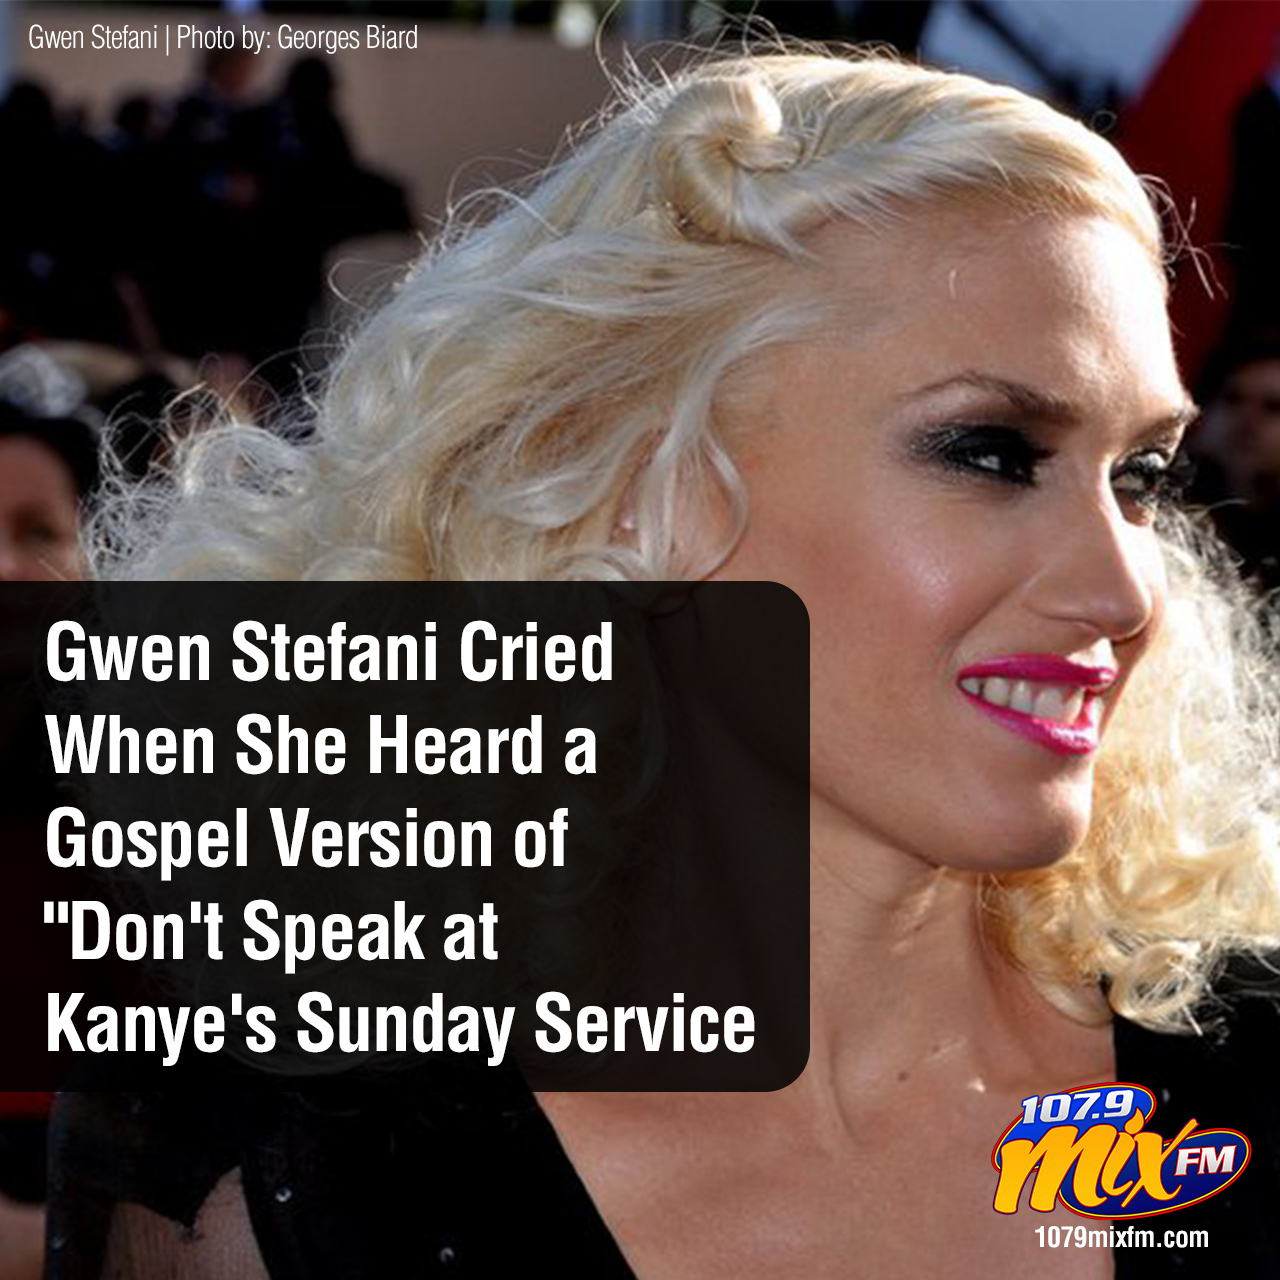 "Gwen Stefani Cried When She Heard a Gospel Version of ""Don't Speak at Kanye's Sunday Service"